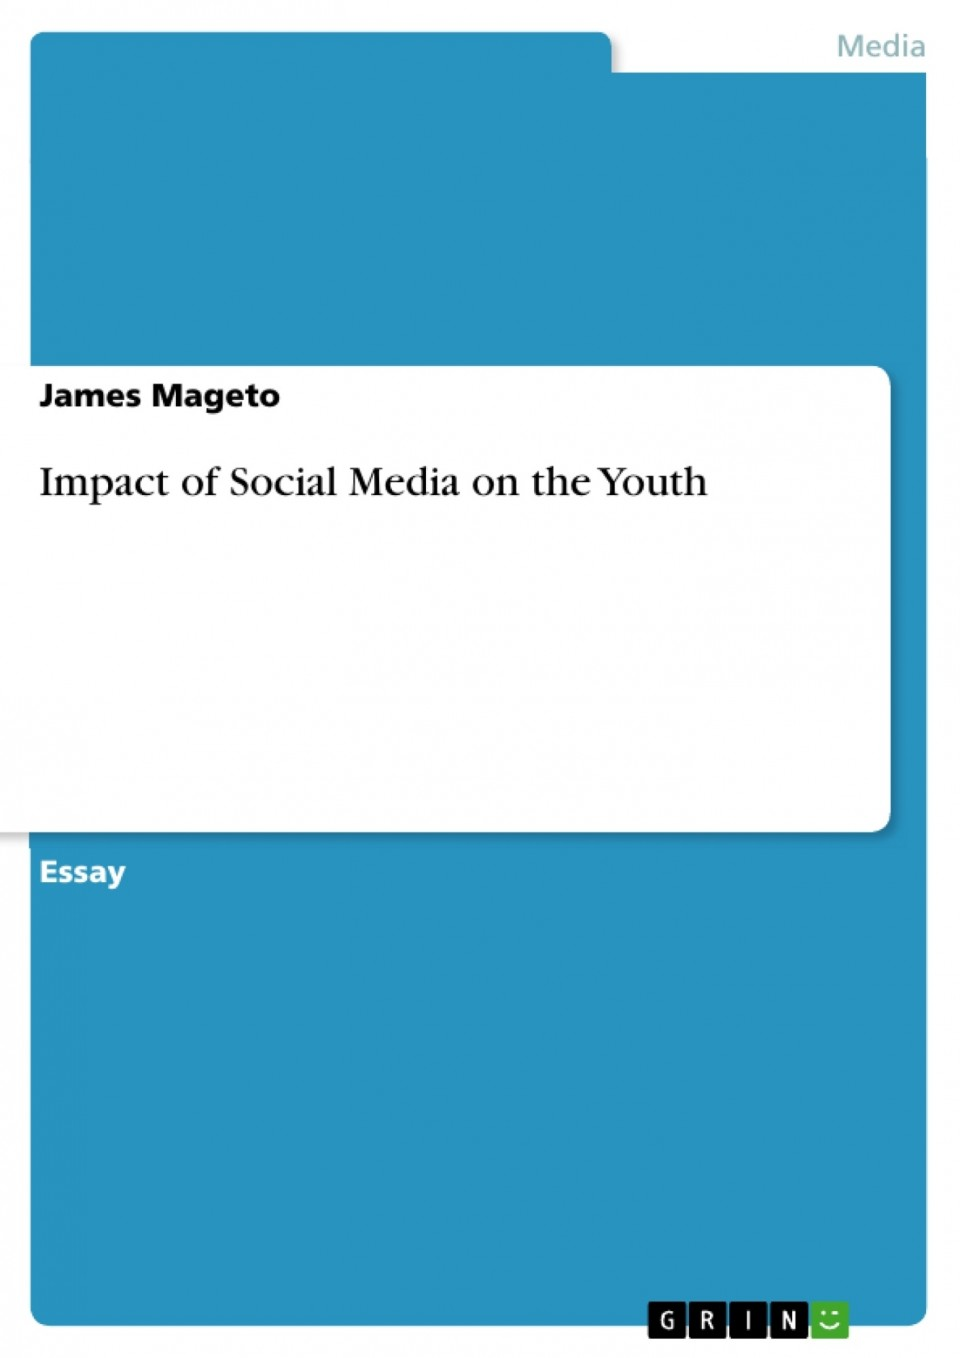 020 Research Paper Conclusion For About Social Media 358350 0 Awful 960